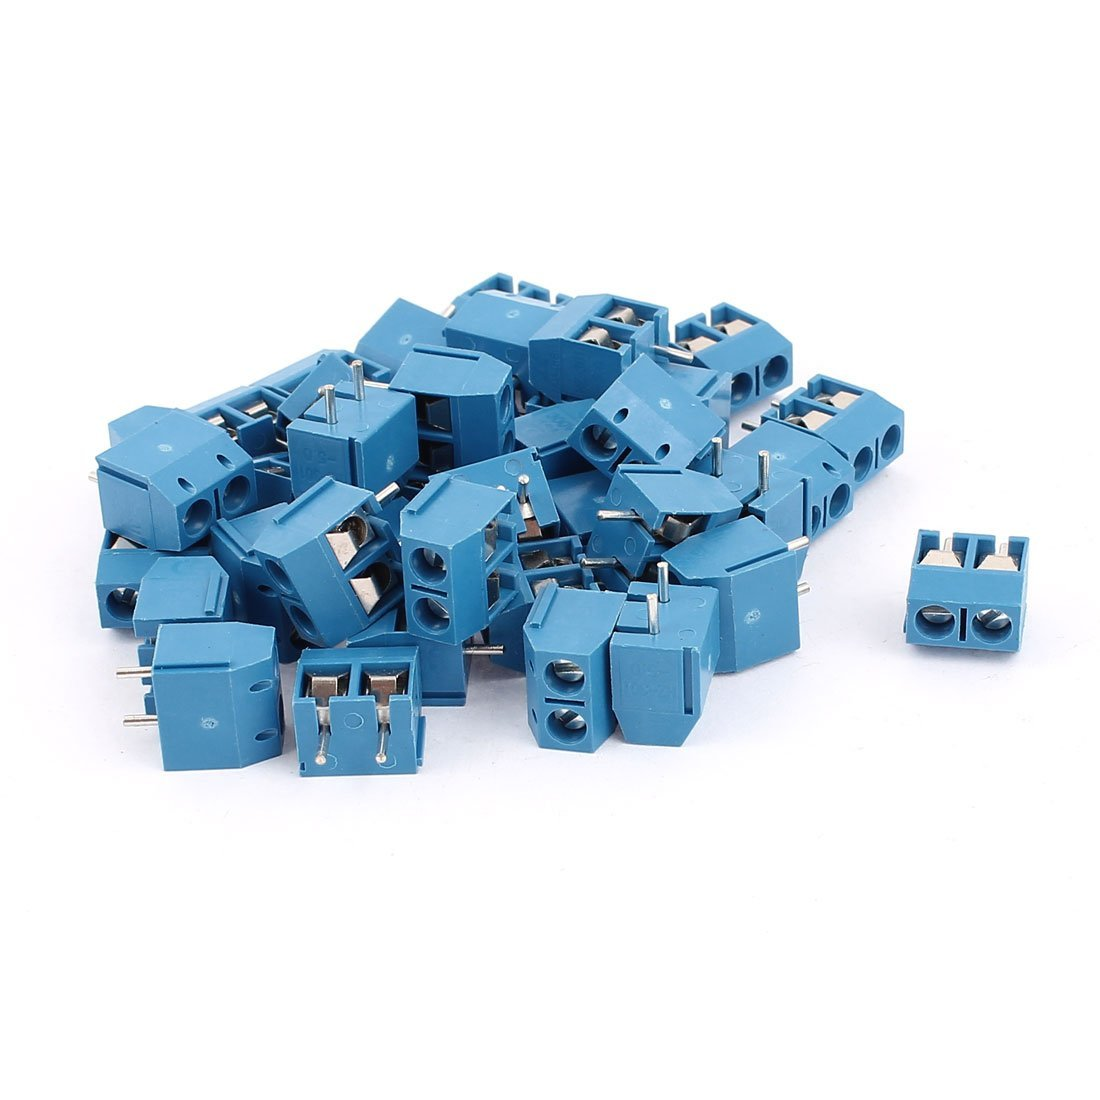 uxcell 40Pcs AC 300V 10A 2 Pins PCB Mounting Screw Terminal Block Connector